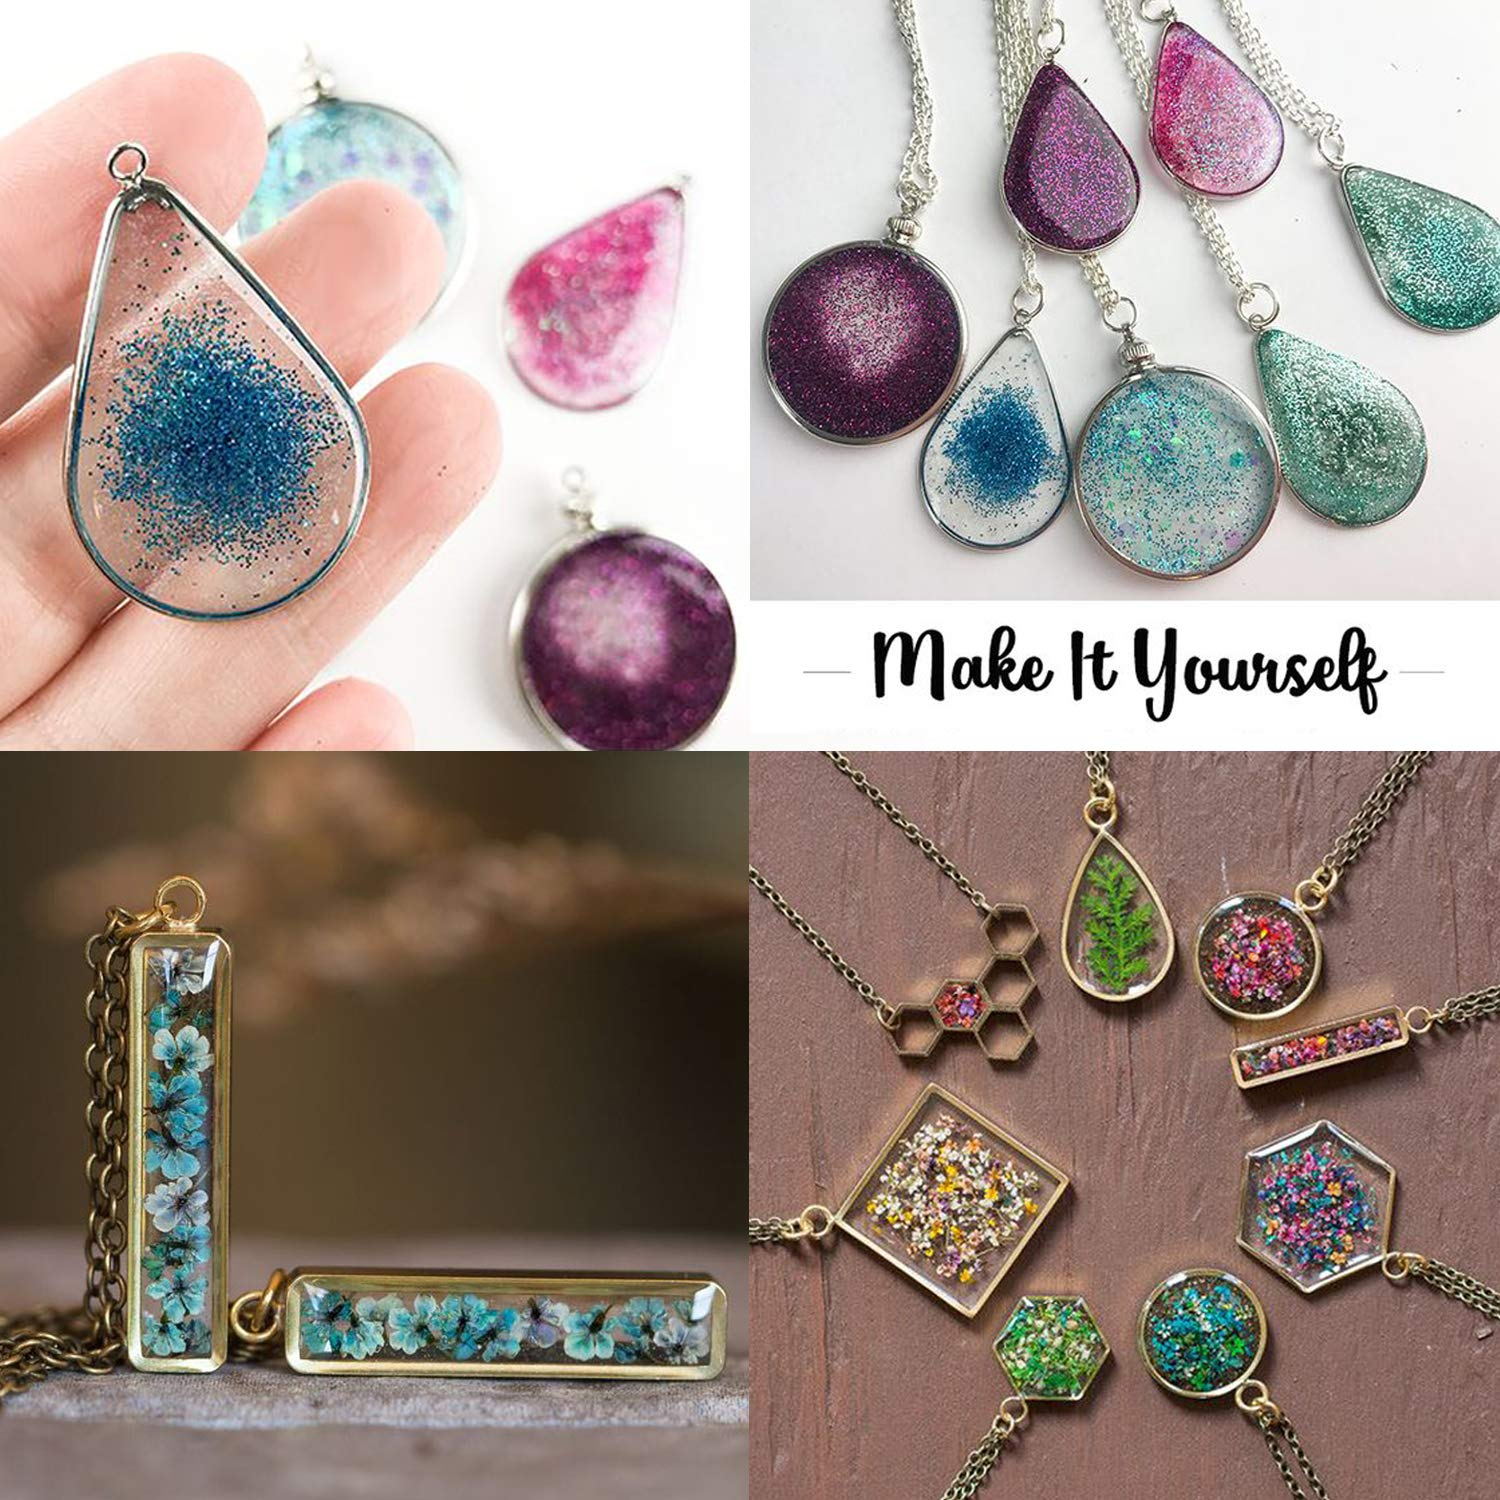 Resin Earrings Necklace Bracelet 40PCS Open Bezel Frame Pendants with Tape LET/'S Resin Charm Pendants Crafts DIY Pressed Flower Frame Pendant for Resin Jewelry